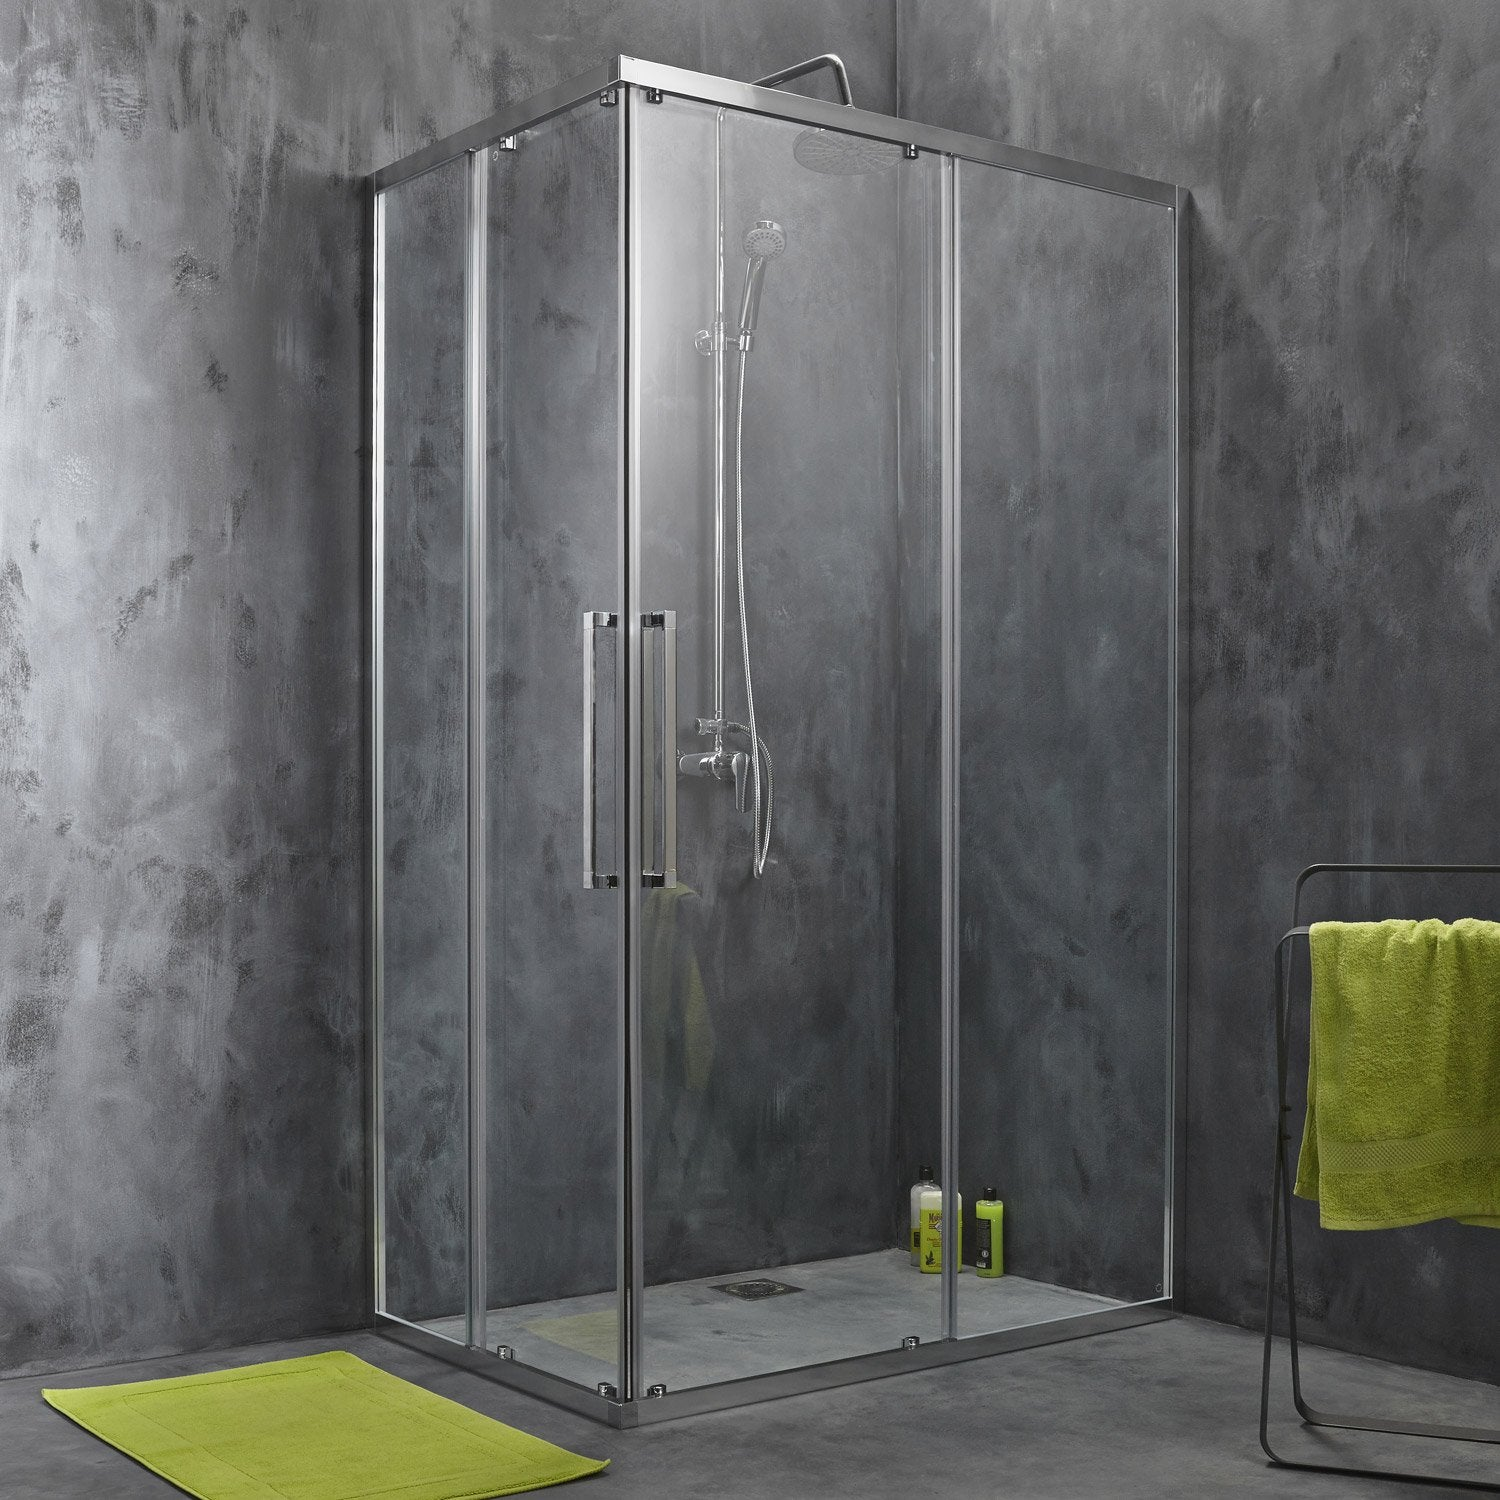 Porte de douche coulissante angle rectangle 120 x 80 cm transparent purit - Porte de douche angle ...